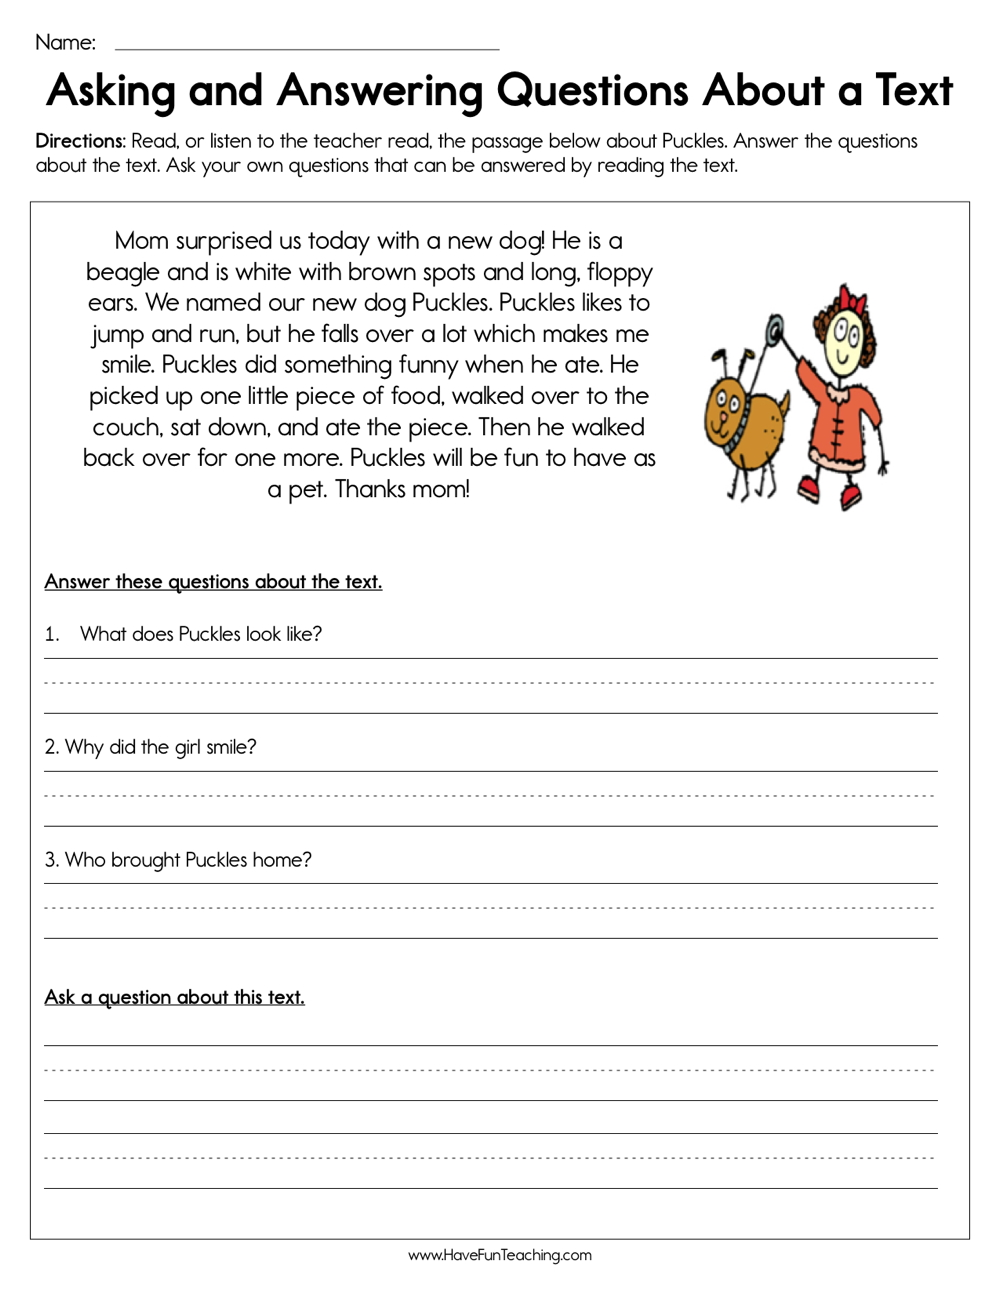 - Asking And Answering Questions About A Text Worksheet – Have Fun